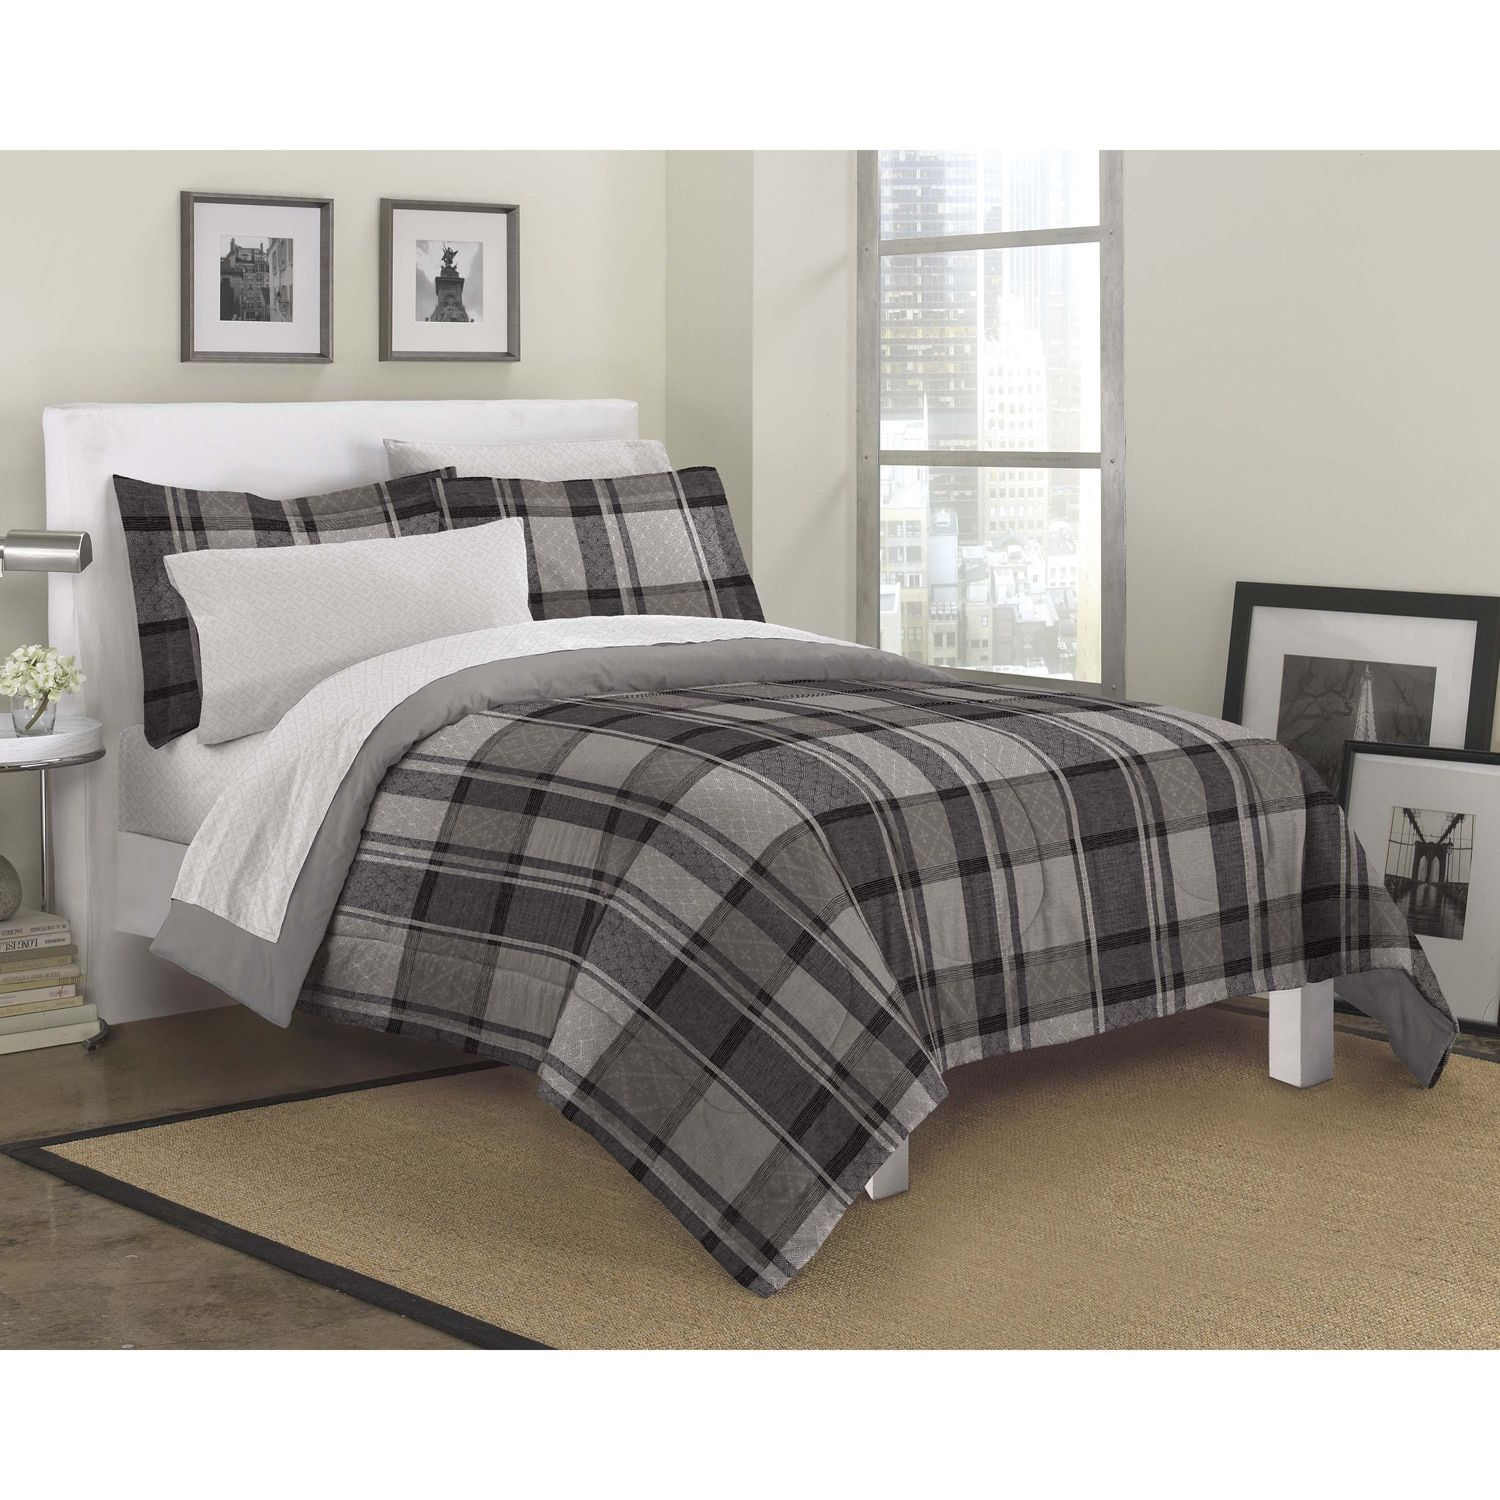 Ultimate Plaid 7 piece Bed in a Bag with Sheet Set